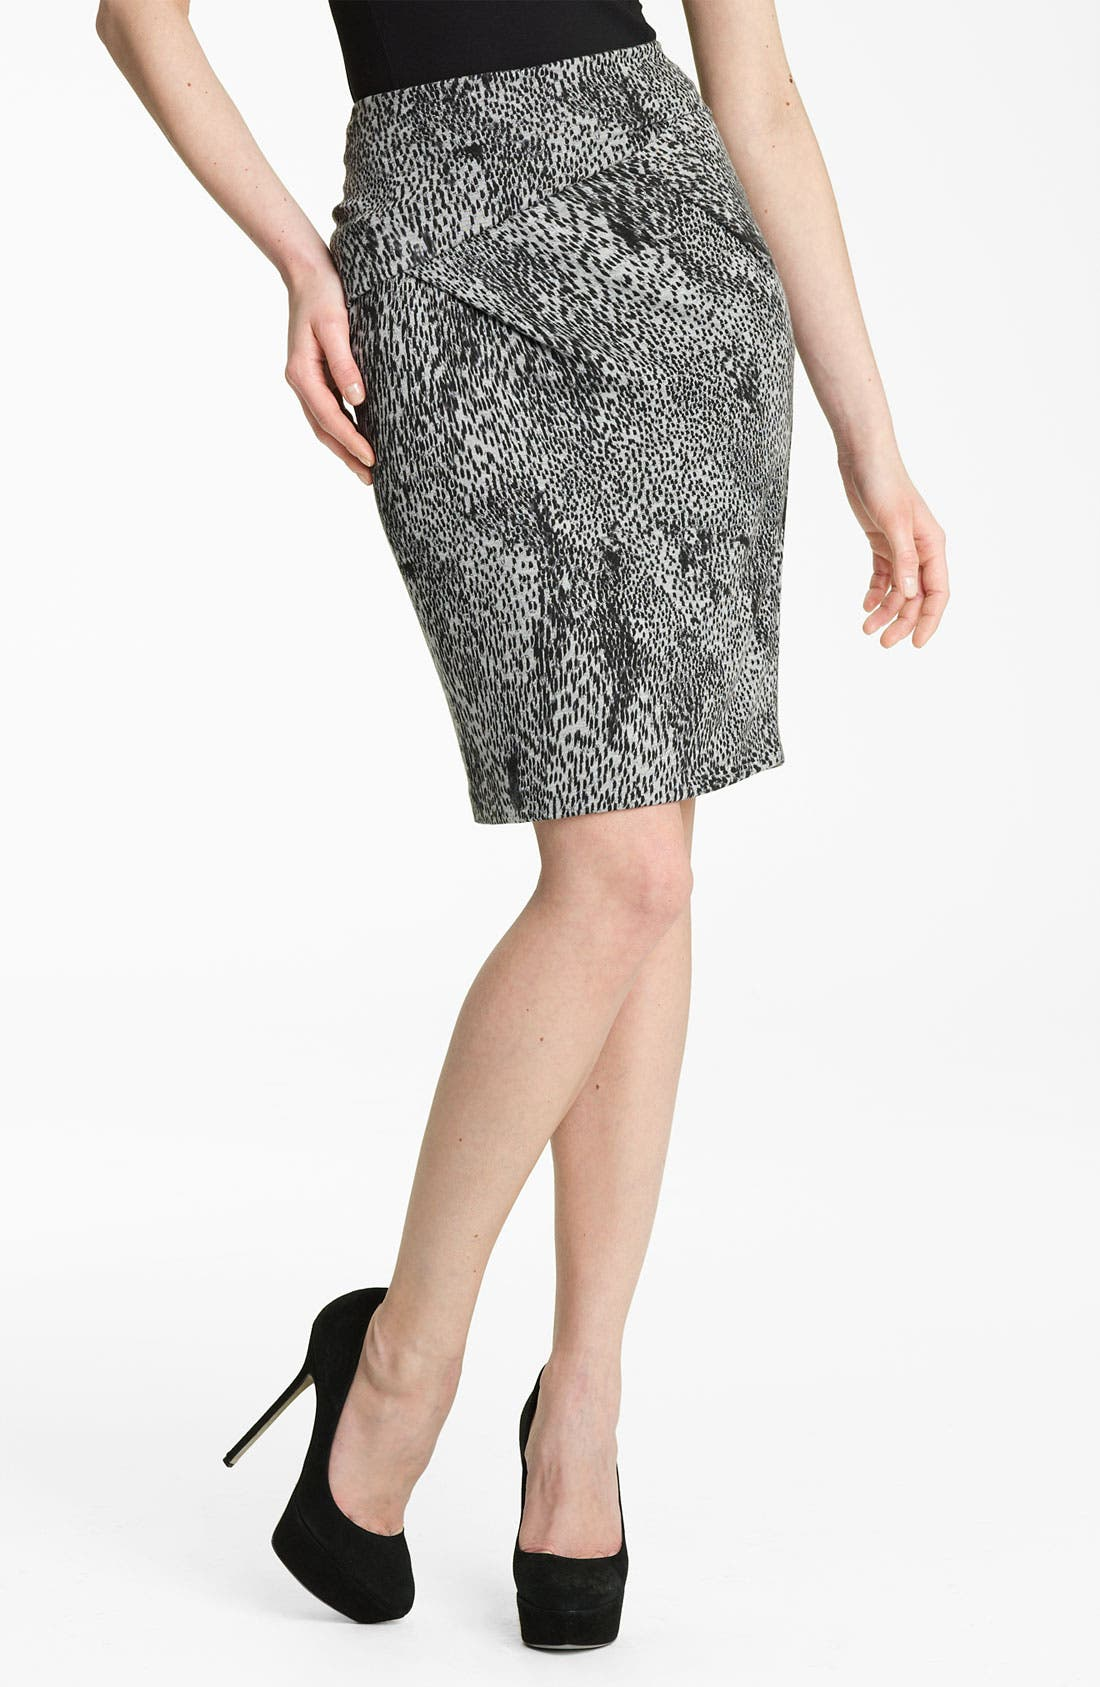 Alternate Image 1 Selected - Max Mara 'Vertigo' Print Jersey Skirt